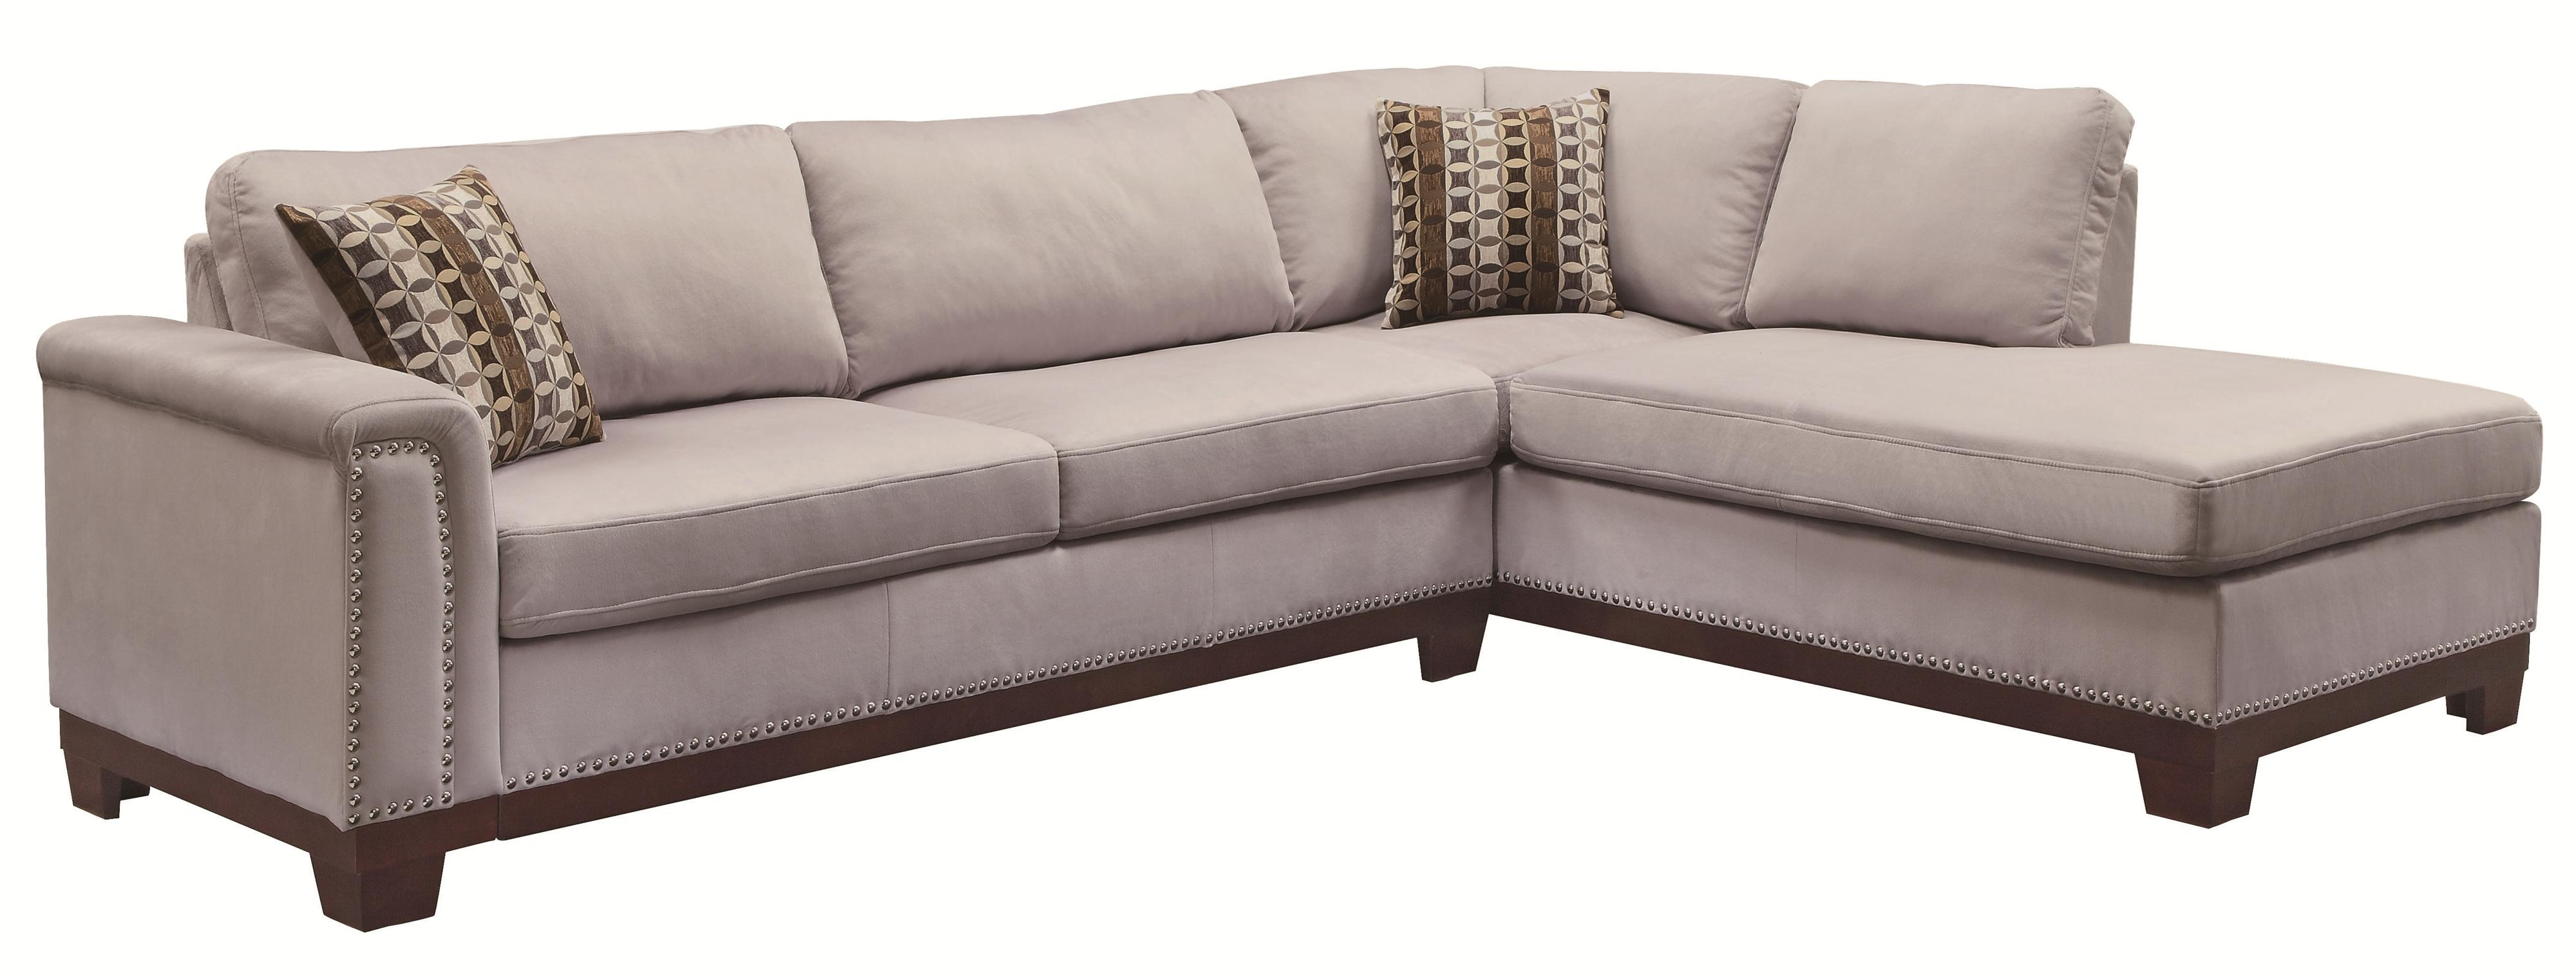 Most Recently Released Large Sectional Sofas Big Lots Outdoor Furniture Apartment Size For Microfiber Sectionals With Chaise (View 12 of 15)